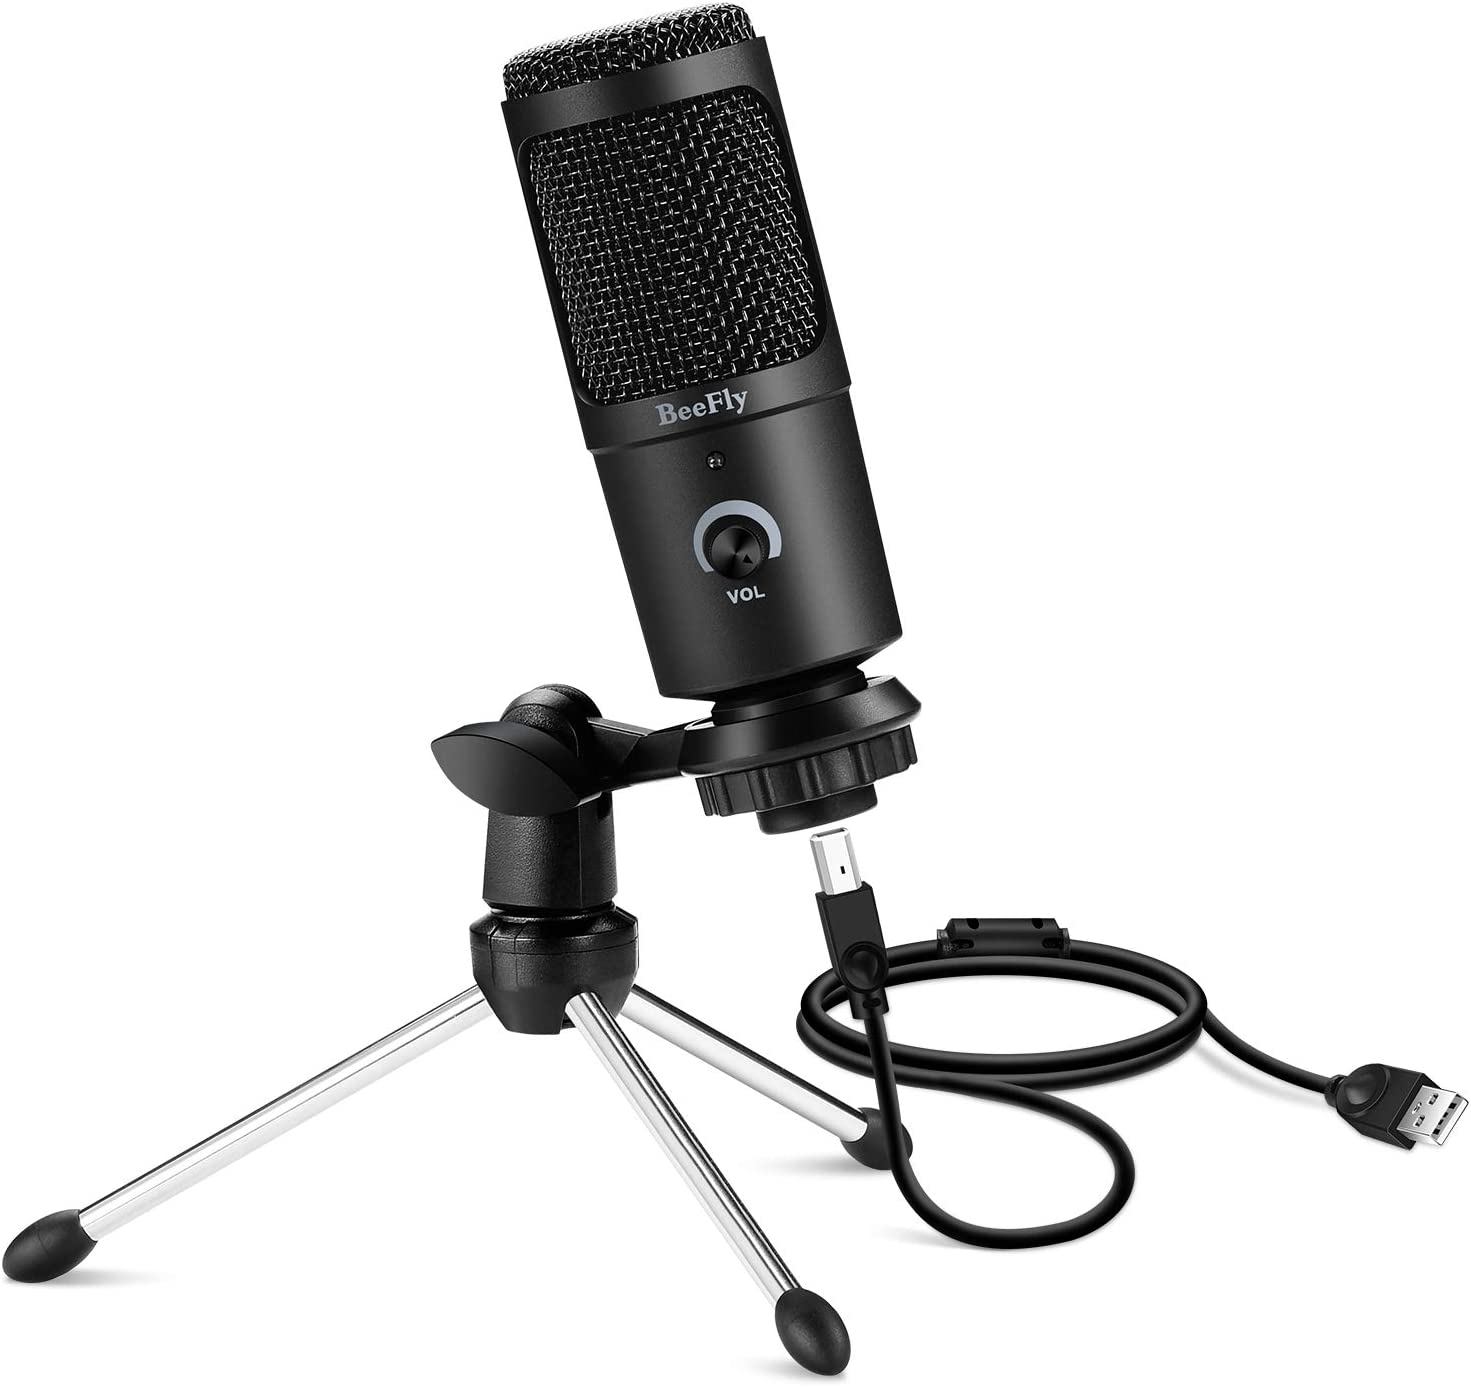 USB Microphone, BeeFly Metal Condenser Recording Microphone for PC Laptop Mac or Windows Desktop Computer Microphone Cardioid Studio Audio Mic for Gaming Streaming Podcast and YouTube Video